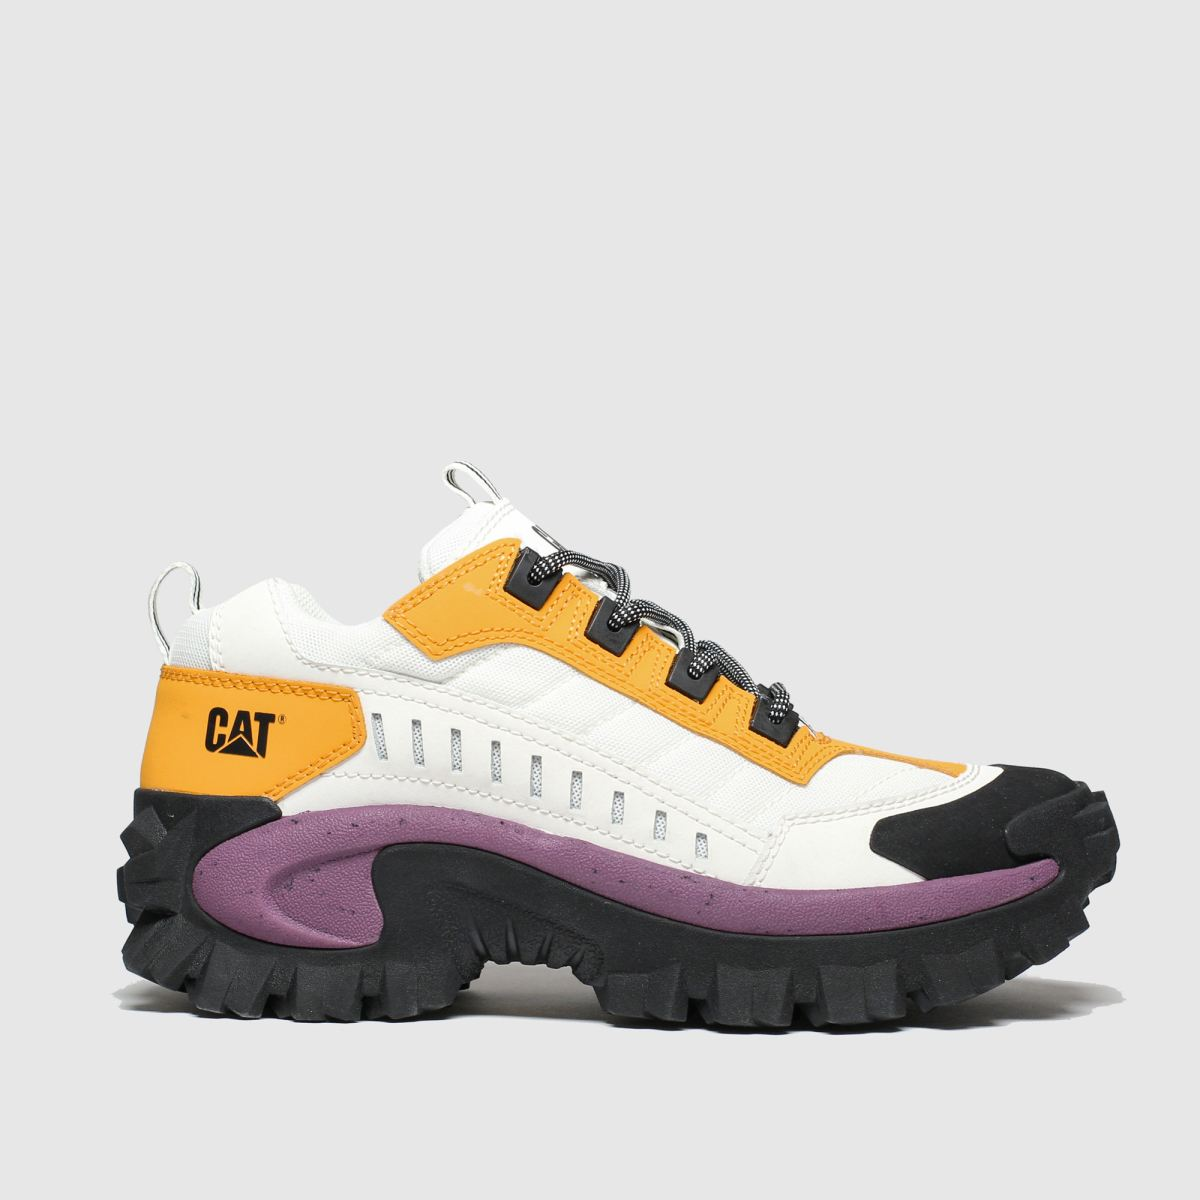 cat-footwear Cat-footwear White & Yellow Intruder Trainers